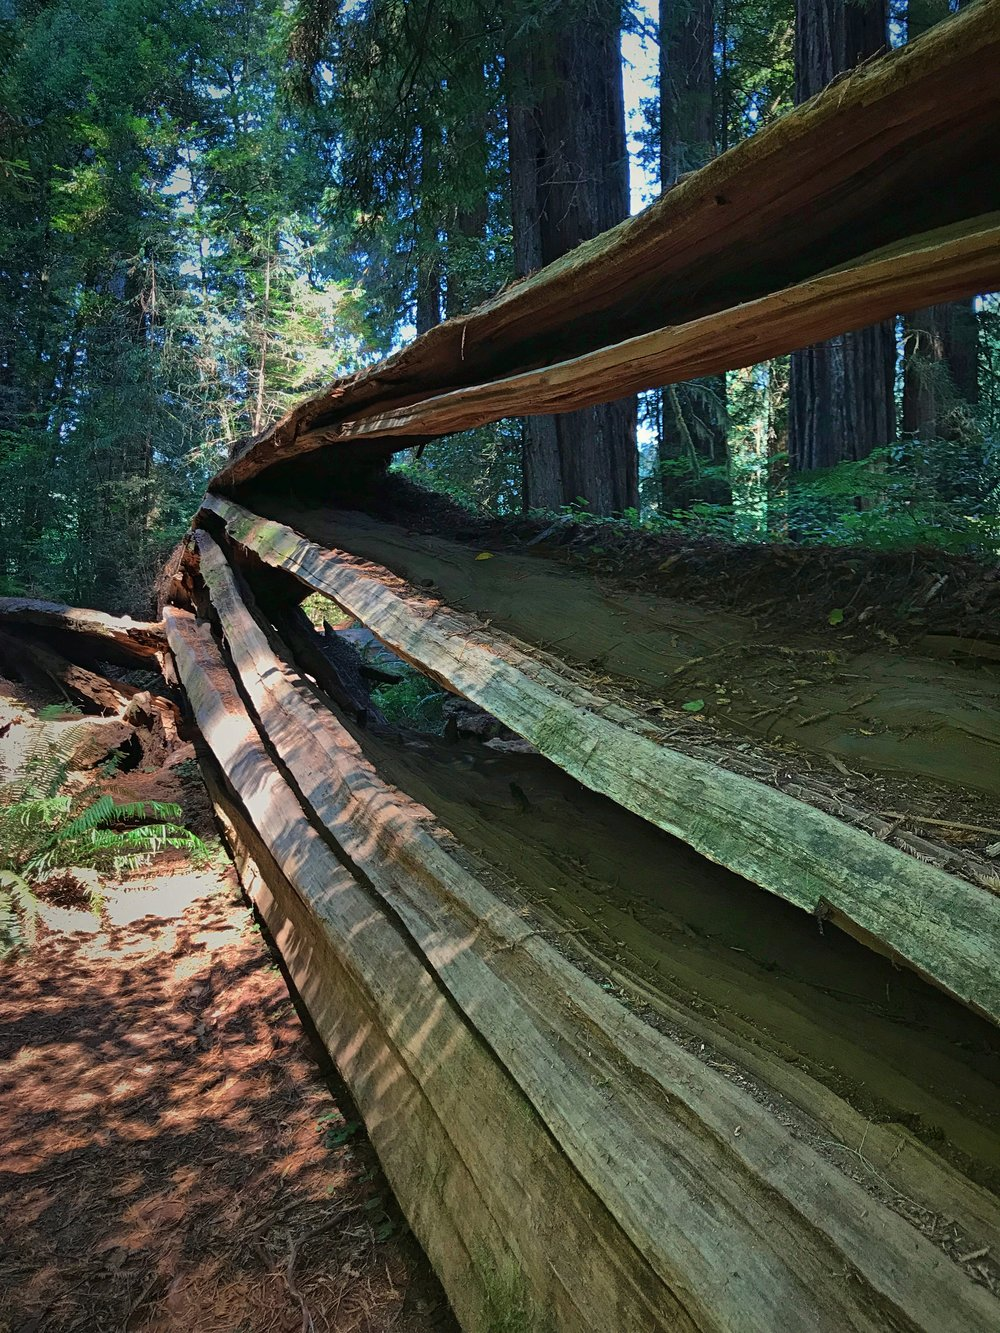 For some reason when this tree fell it split into these layers of planks.